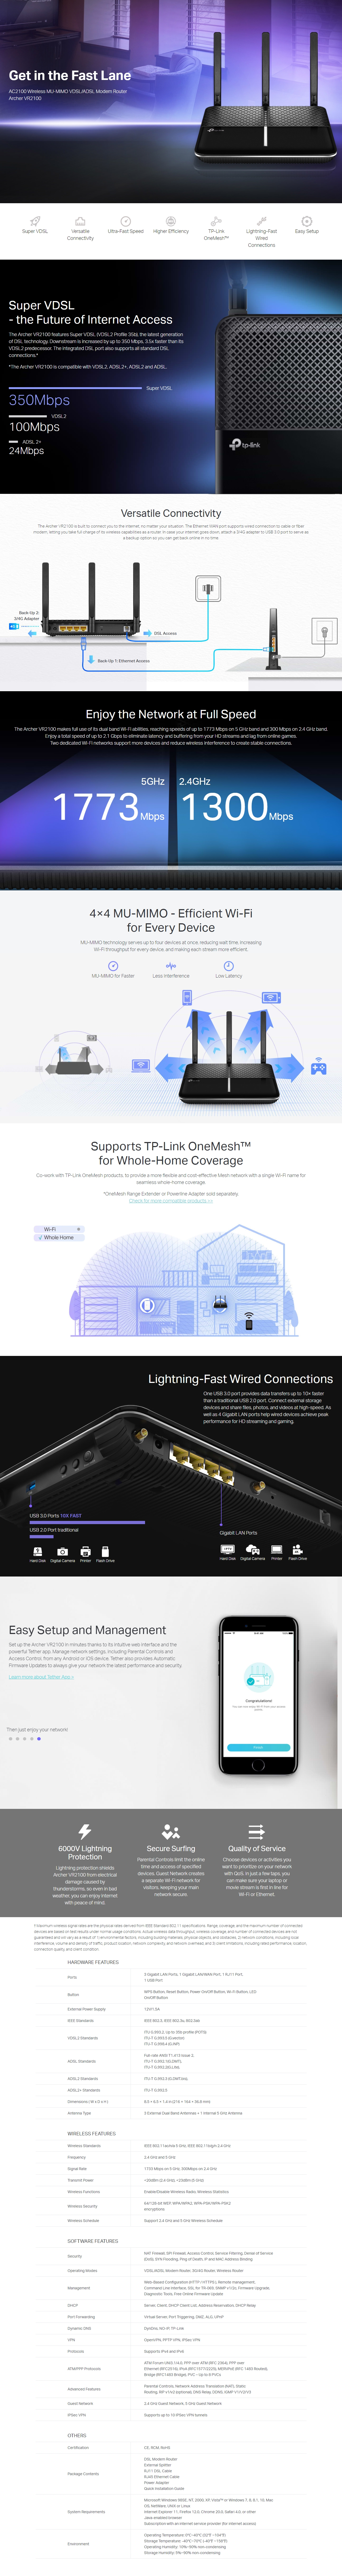 A large marketing image providing additional information about the product TP-LINK Archer VR2100 Wireless Dual Band MU-MIMO VDSL Modem Router - Additional alt info not provided